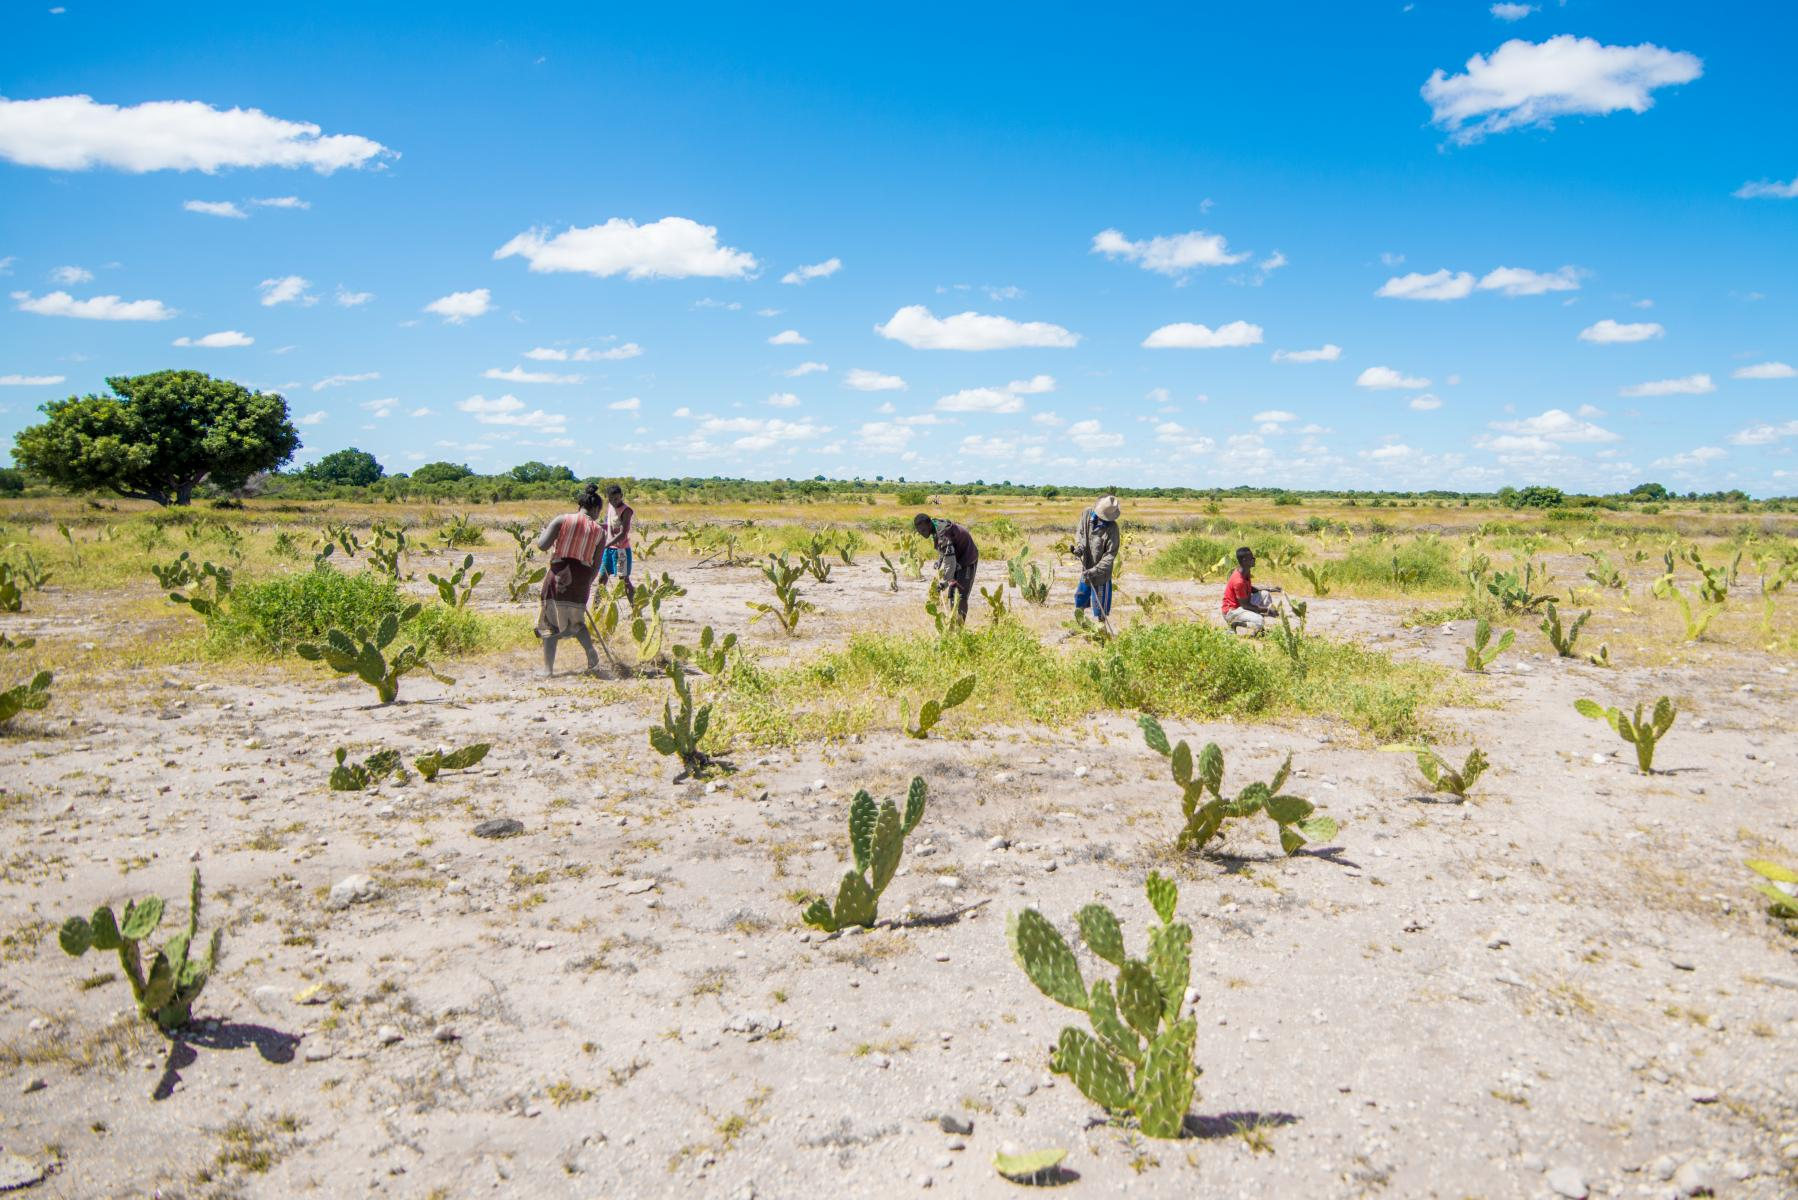 A group of people plant cactus in a large, arid field.